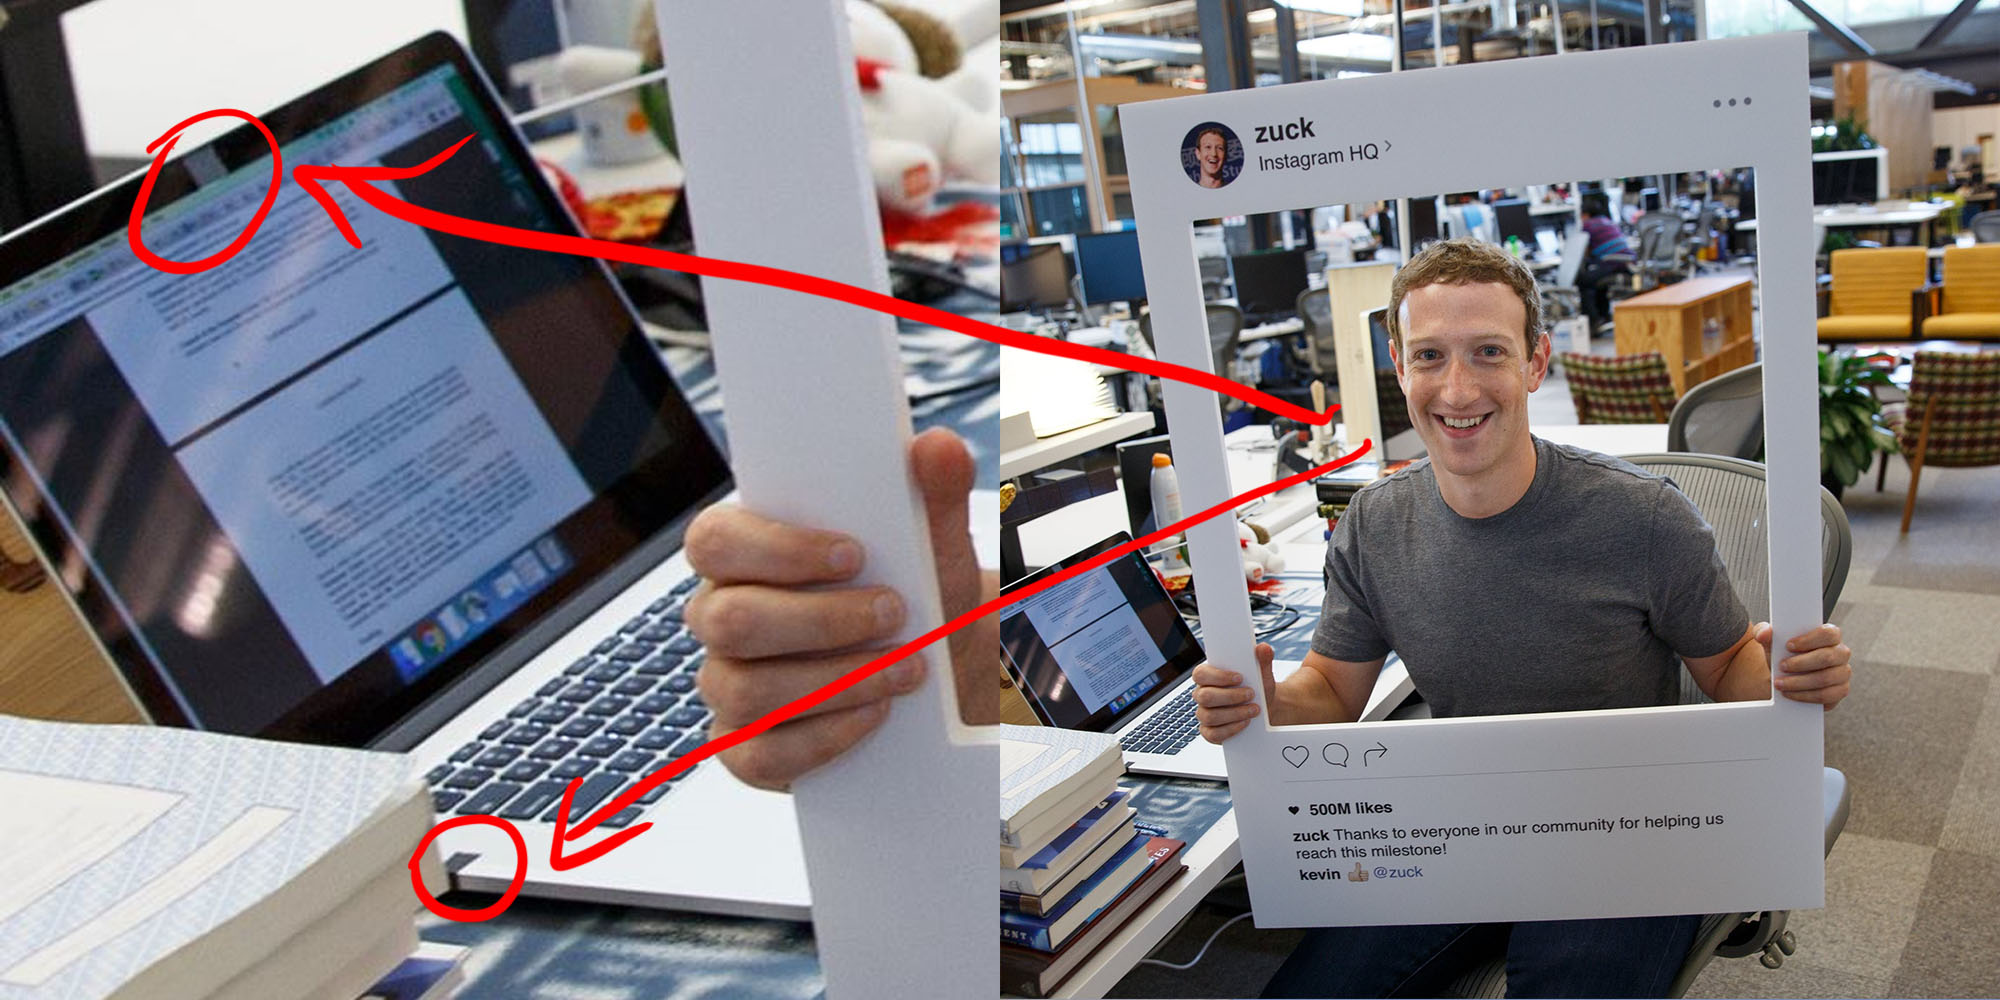 zuckerberg privacy